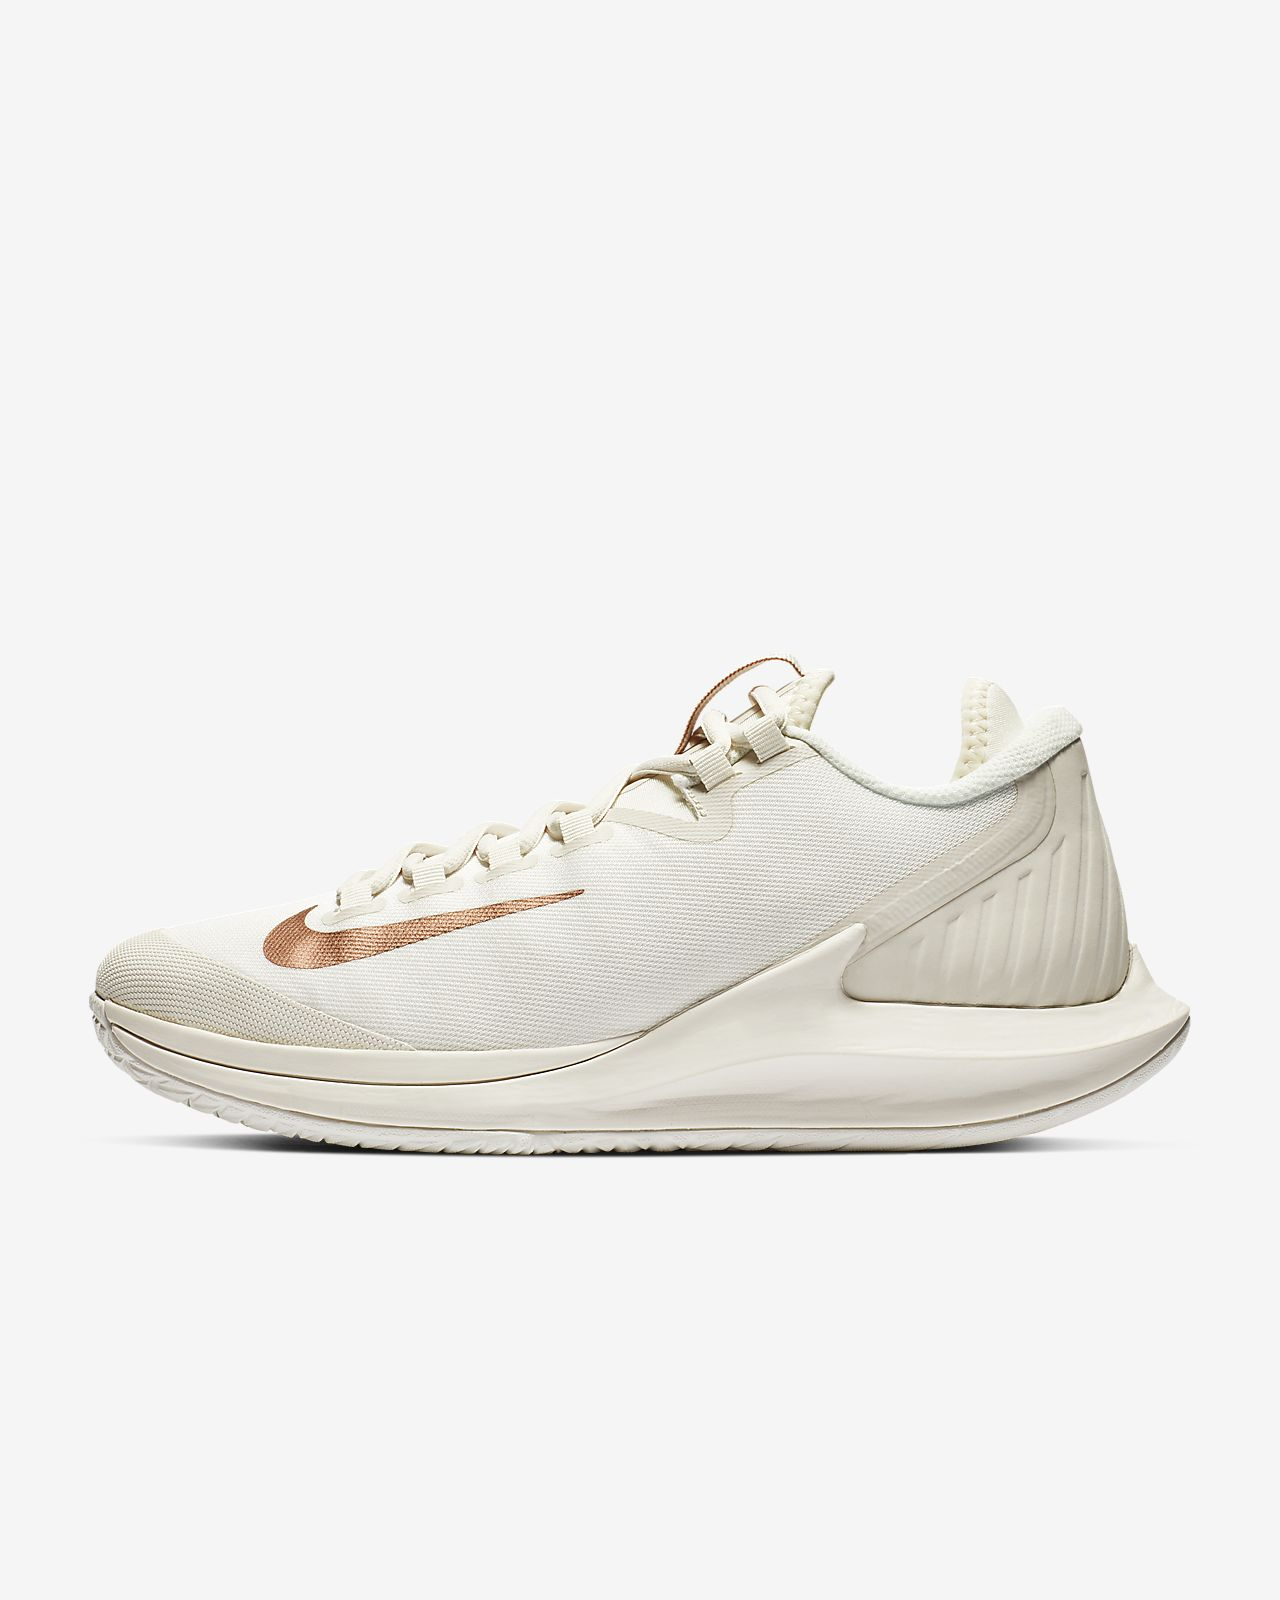 NikeCourt Air Zoom Zero Damen Tennisschuh